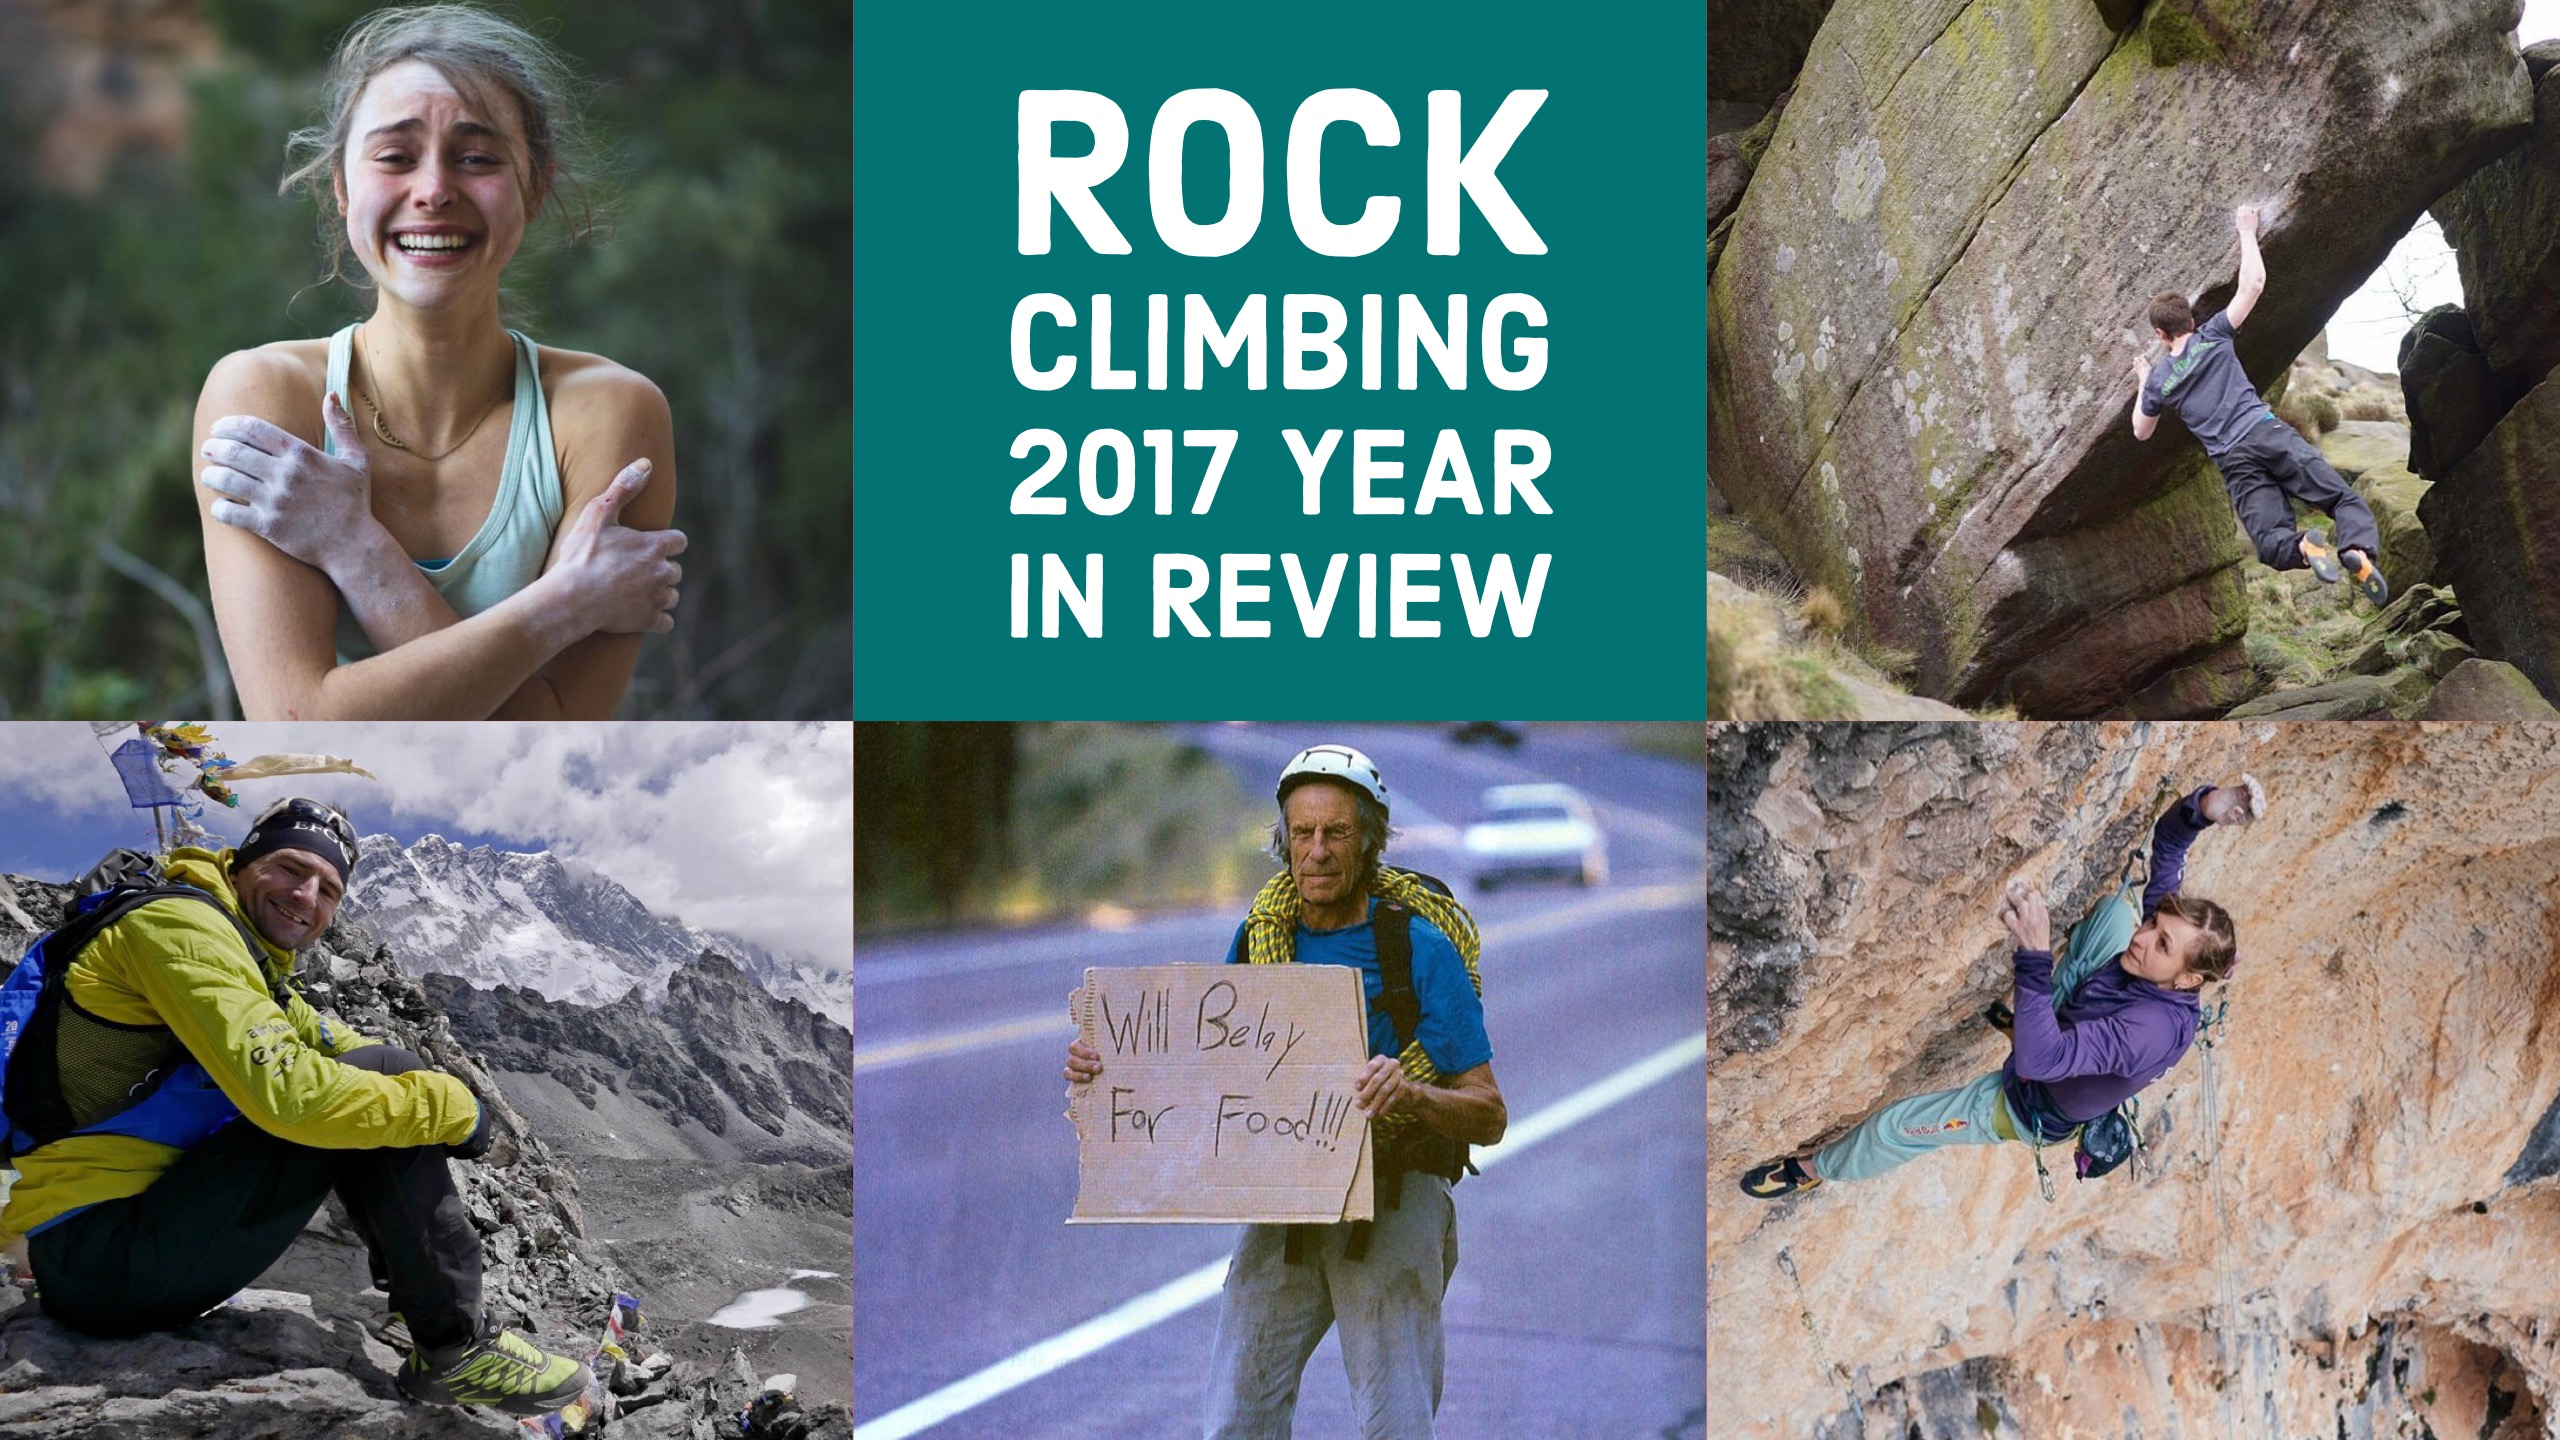 Rock Climbing – 2017 Year in Review